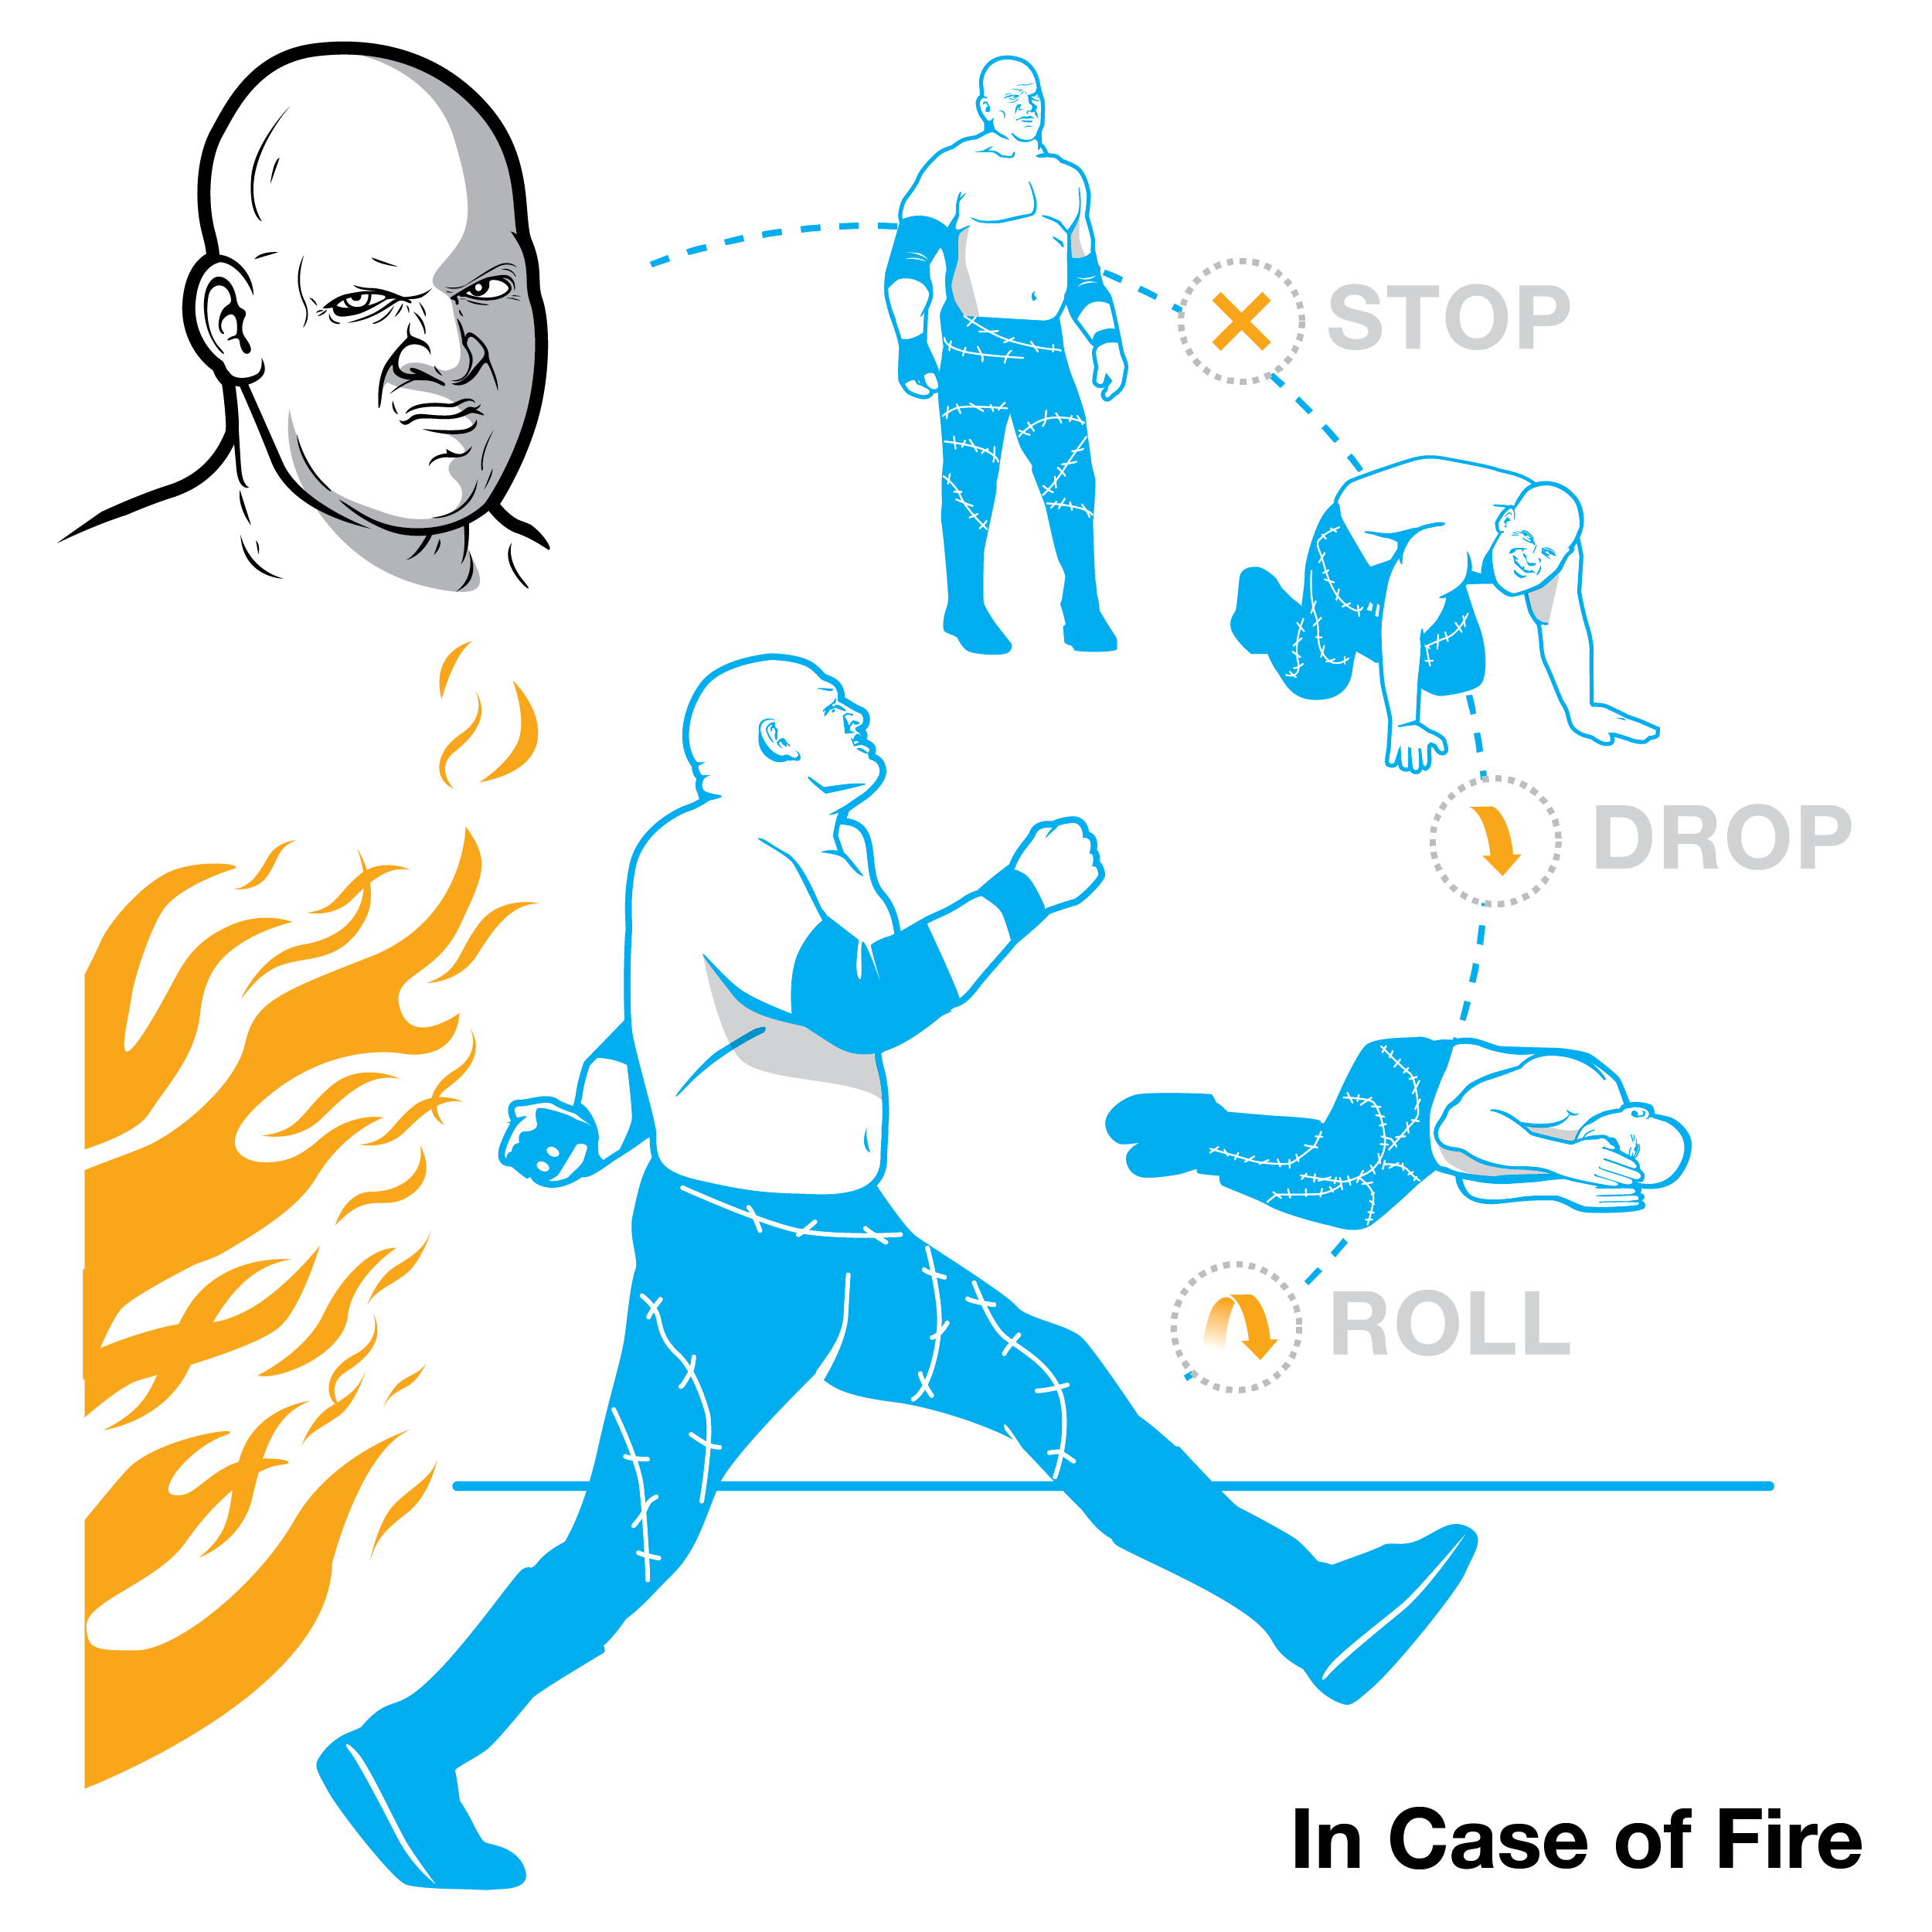 TM_Detwiler_Howto_WWE_Fire_safety-01.png